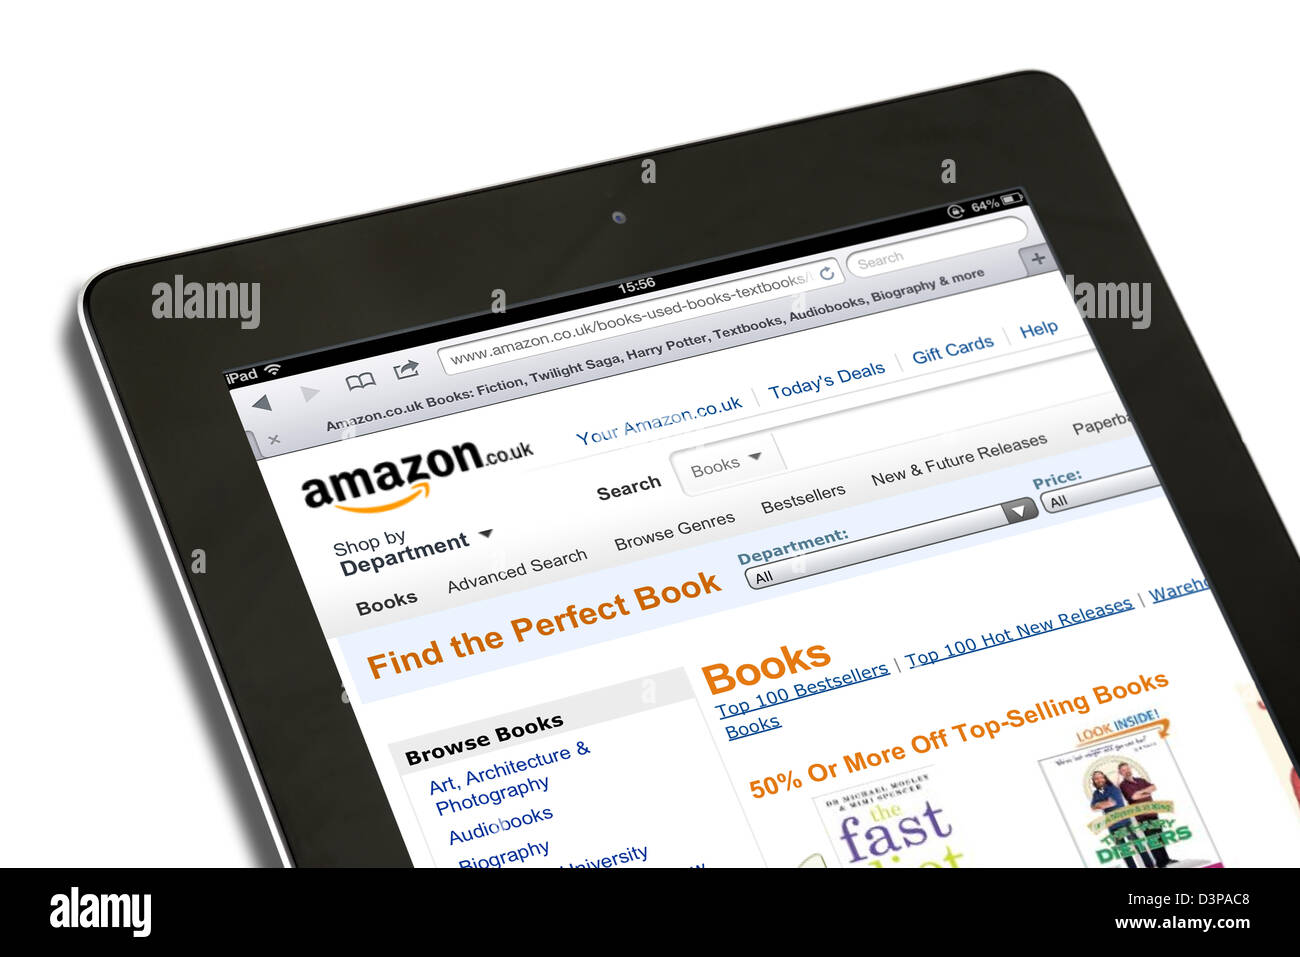 Amazon Uk Books Shopping For Books On The Amazon Co Uk Website On A 4th Generation